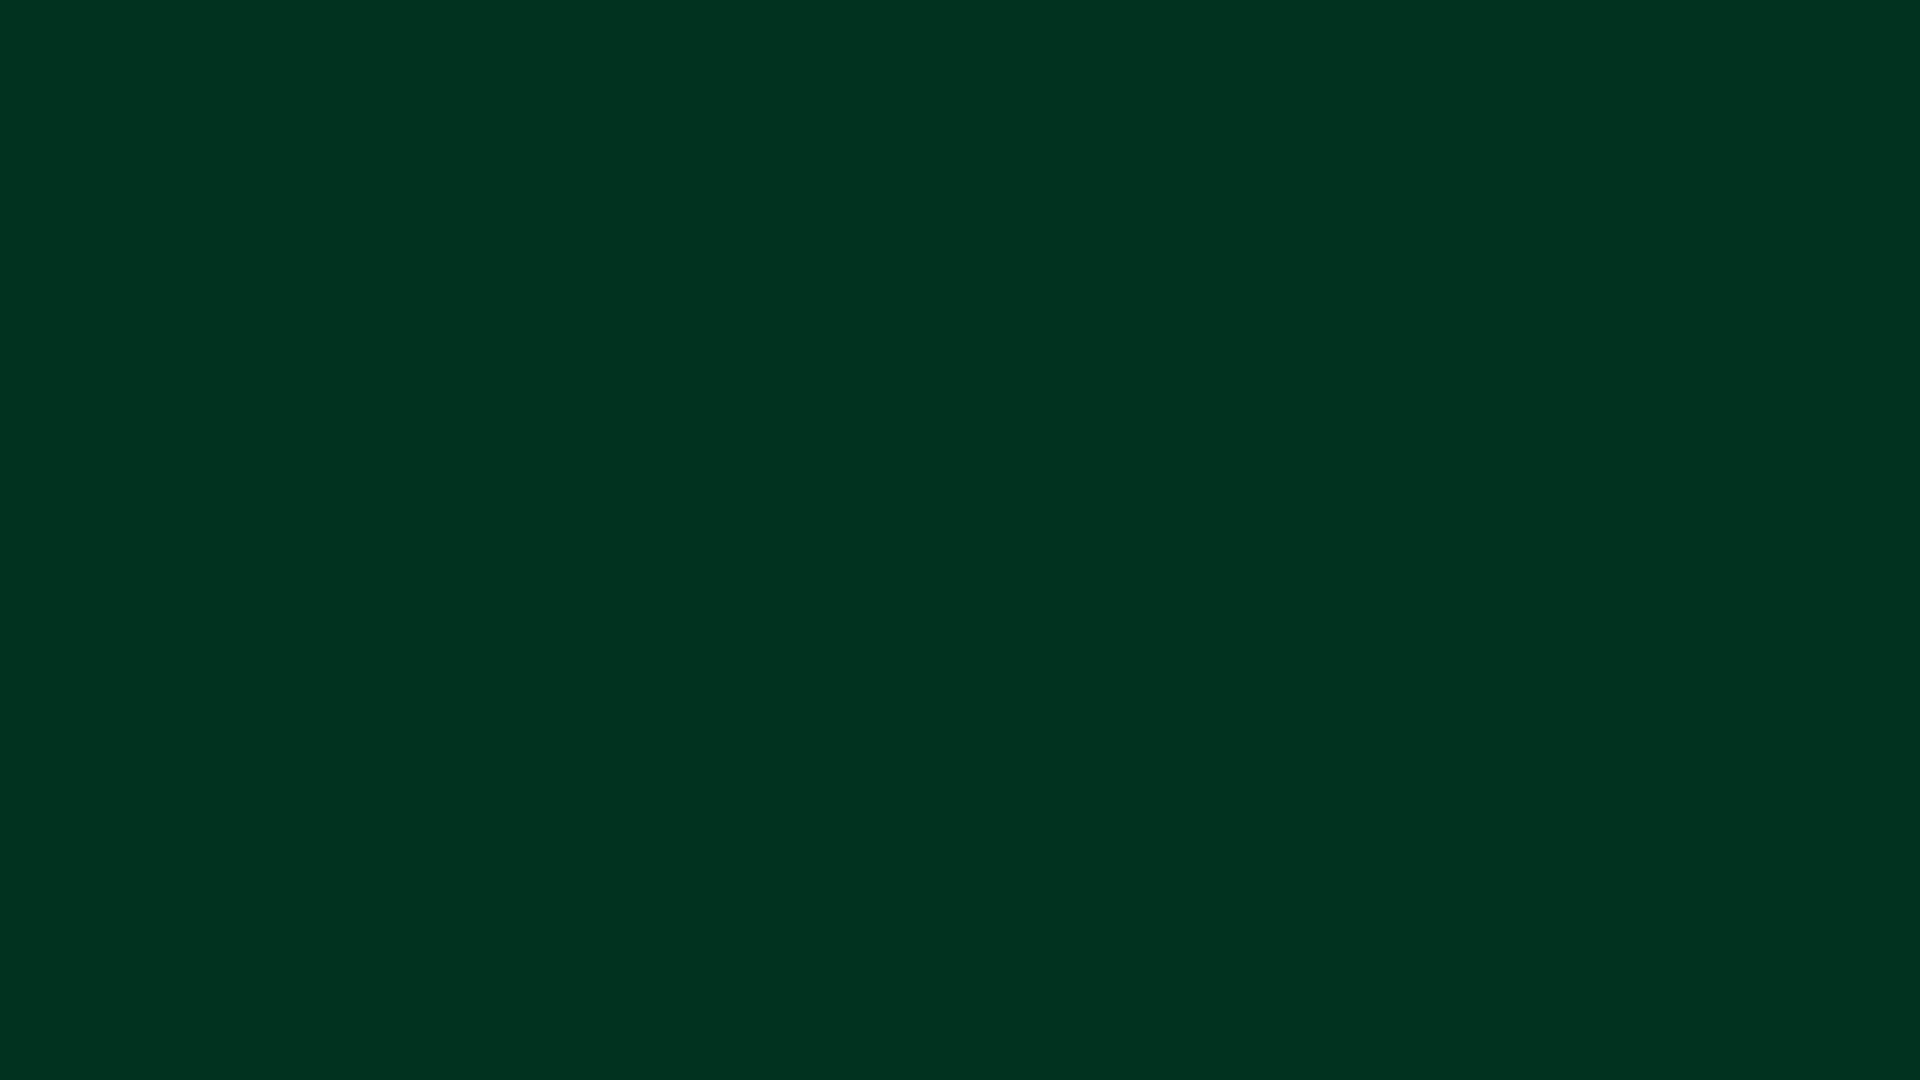 1920x1080  Dark Green Solid Color Background